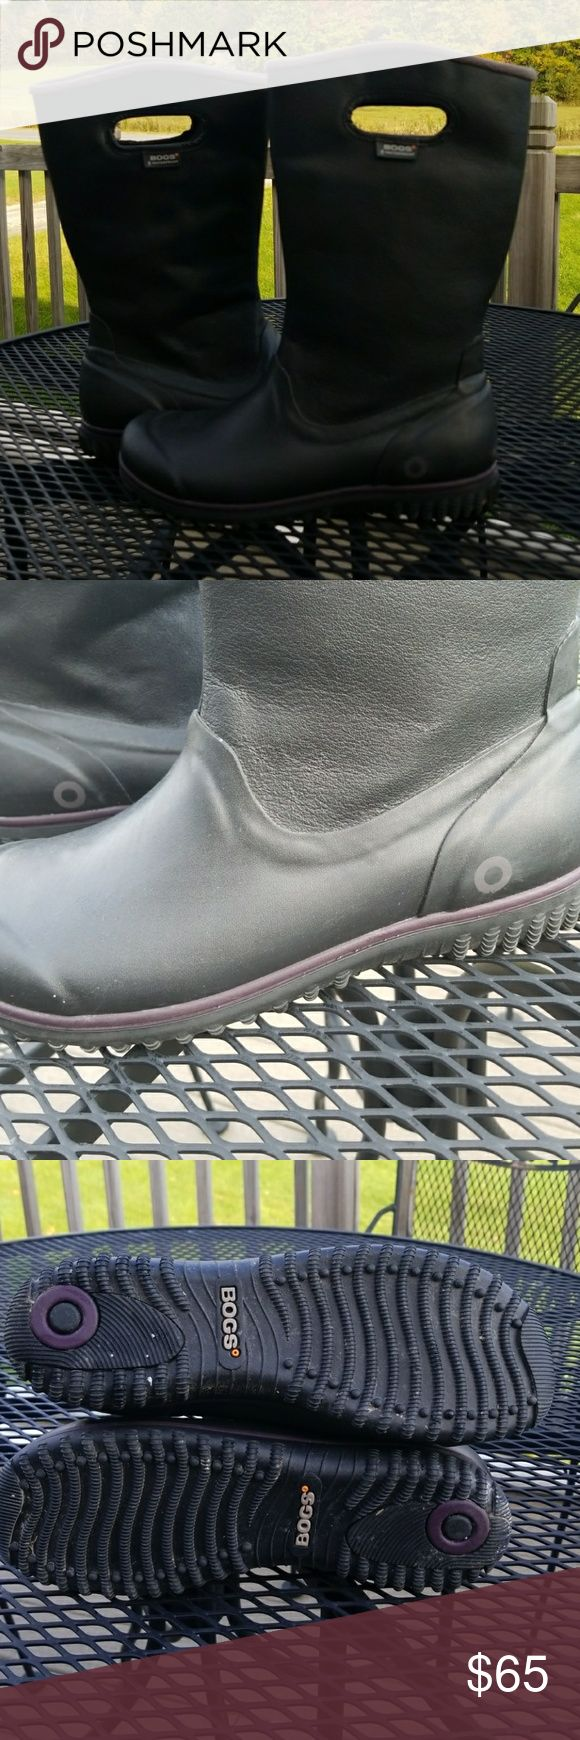 Bogs Winter boots Wore once. Leather upper Bogs Winter boots. Size 10 women. bogs Shoes Winter & Rain Boots